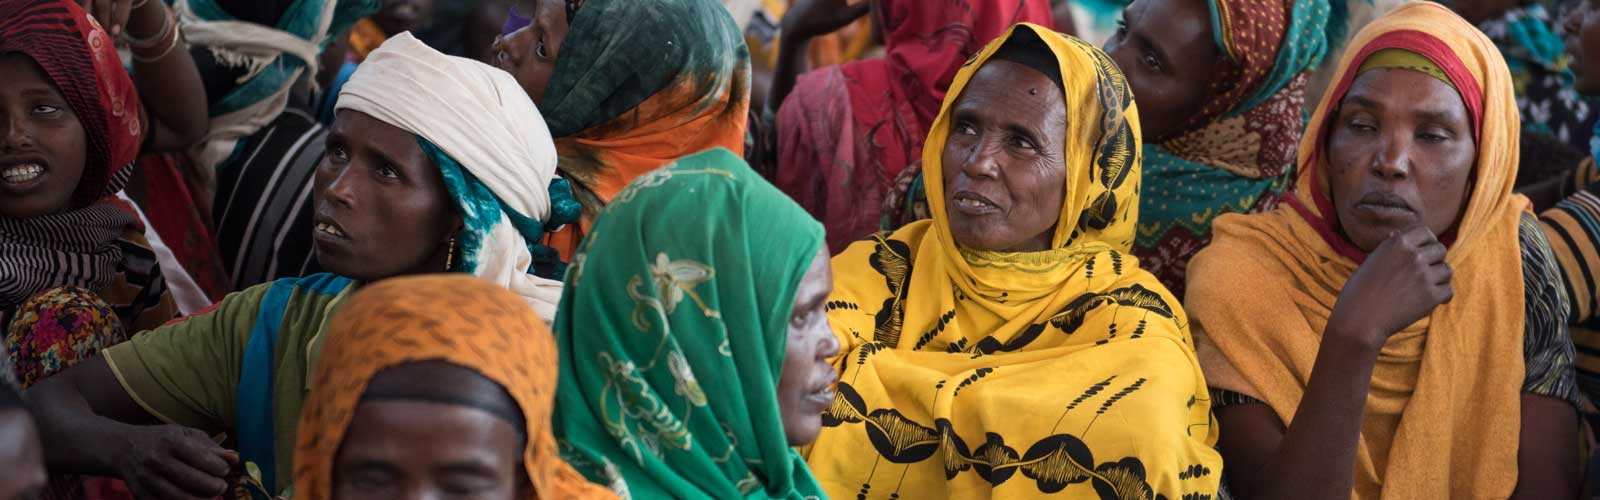 Women in Ethiopia at a savings group meeting